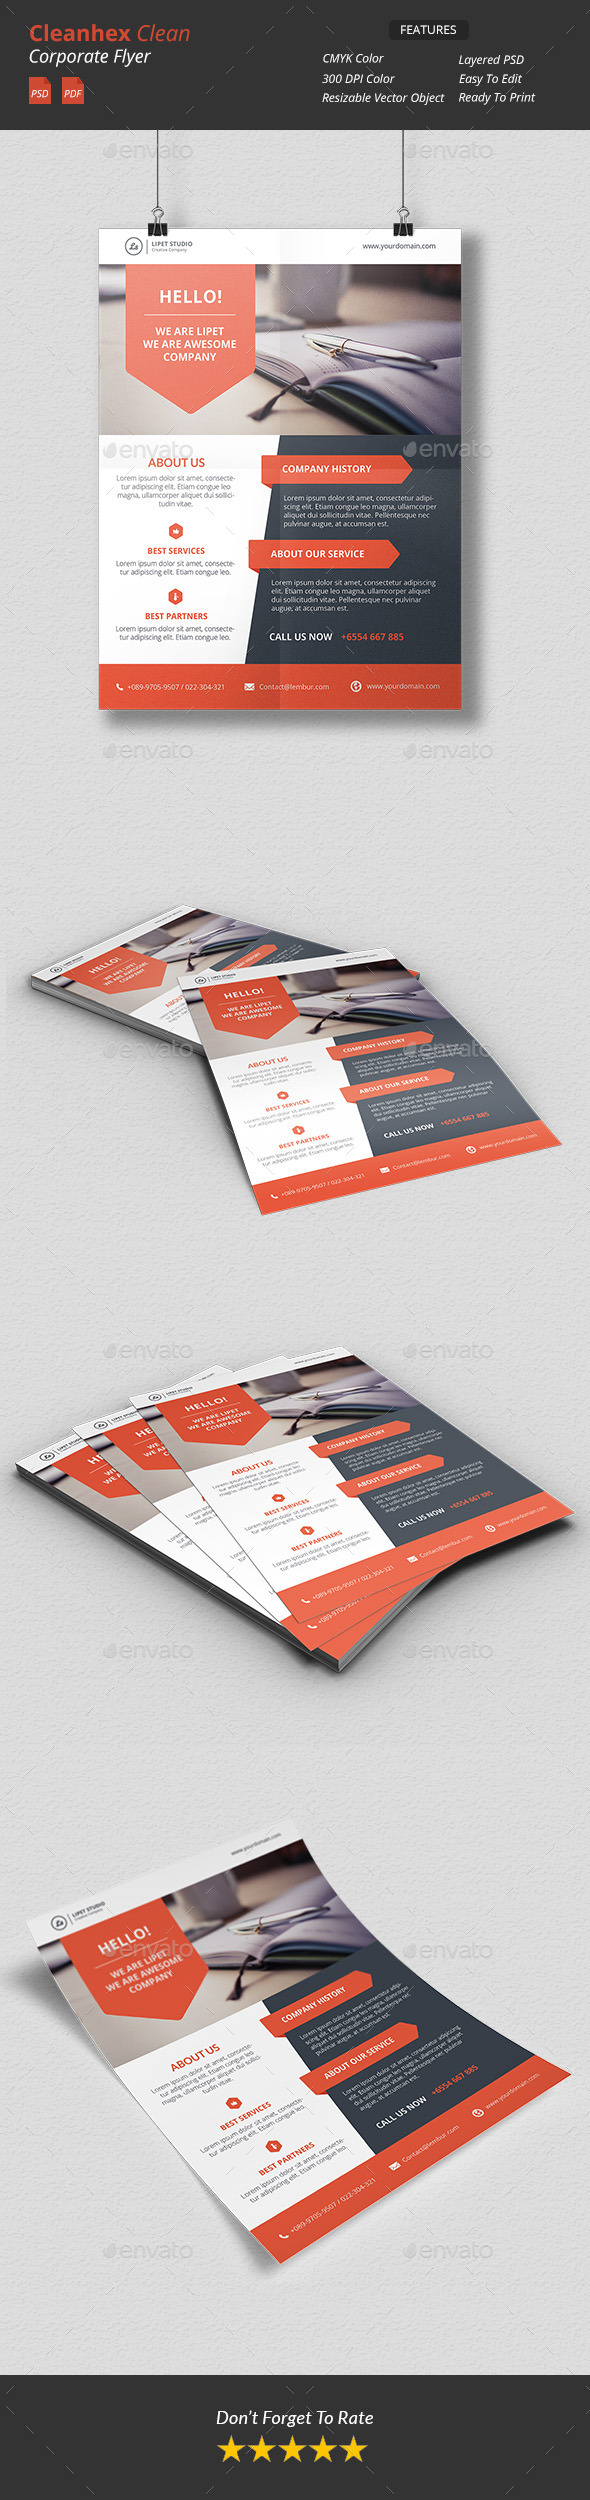 Cleanhex - Clean Corporate Flyer v3 - Corporate Business Cards